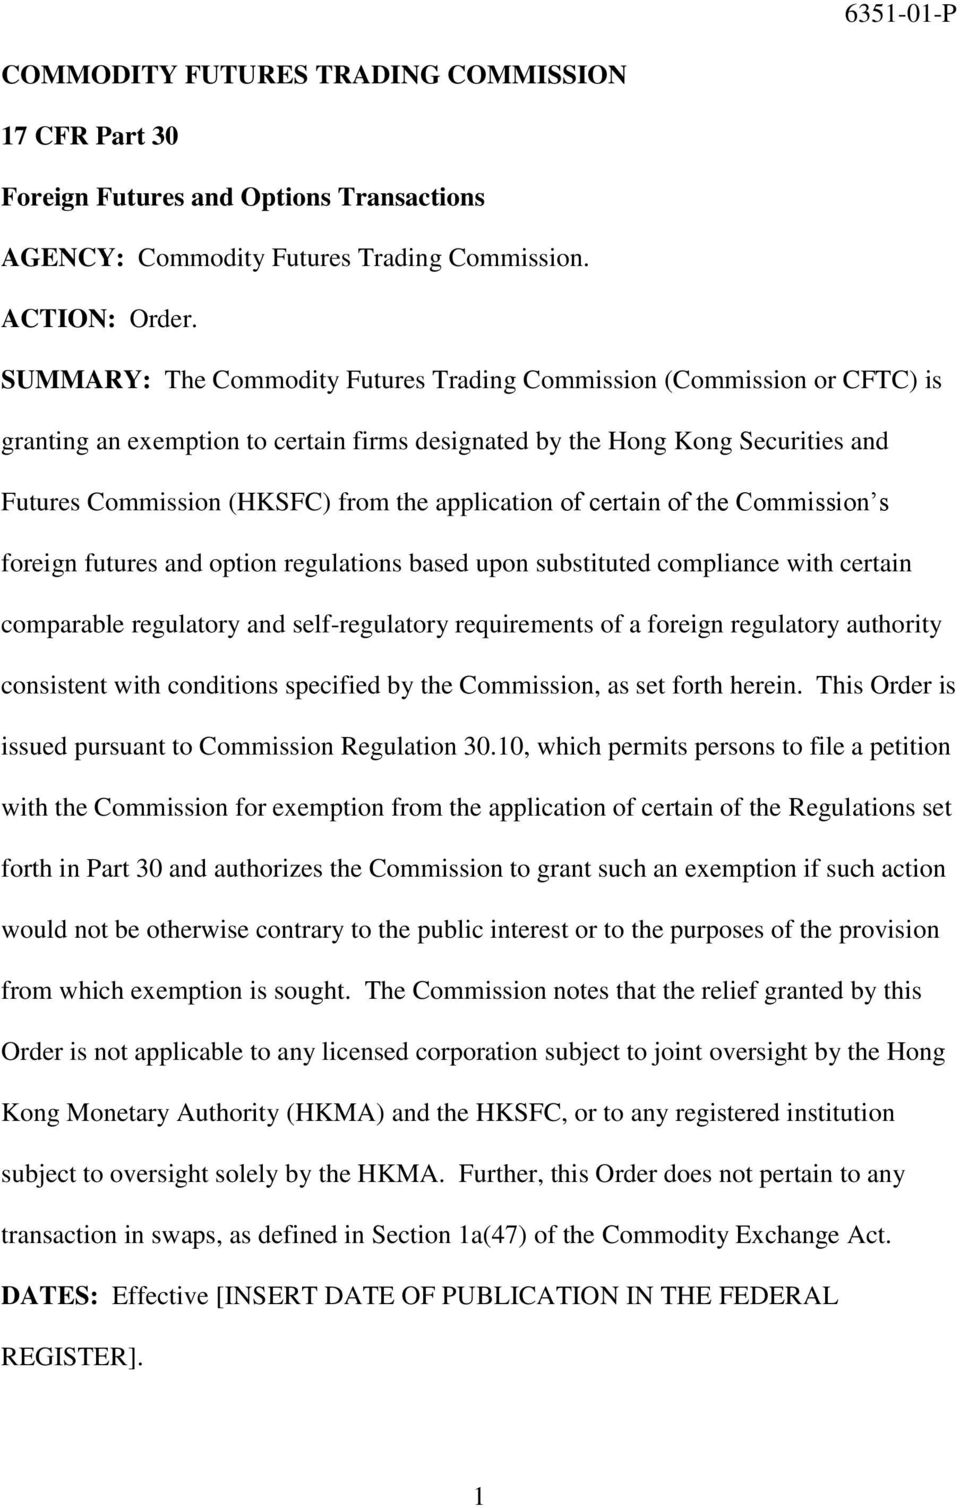 application of certain of the Commission s foreign futures and option regulations based upon substituted compliance with certain comparable regulatory and self-regulatory requirements of a foreign